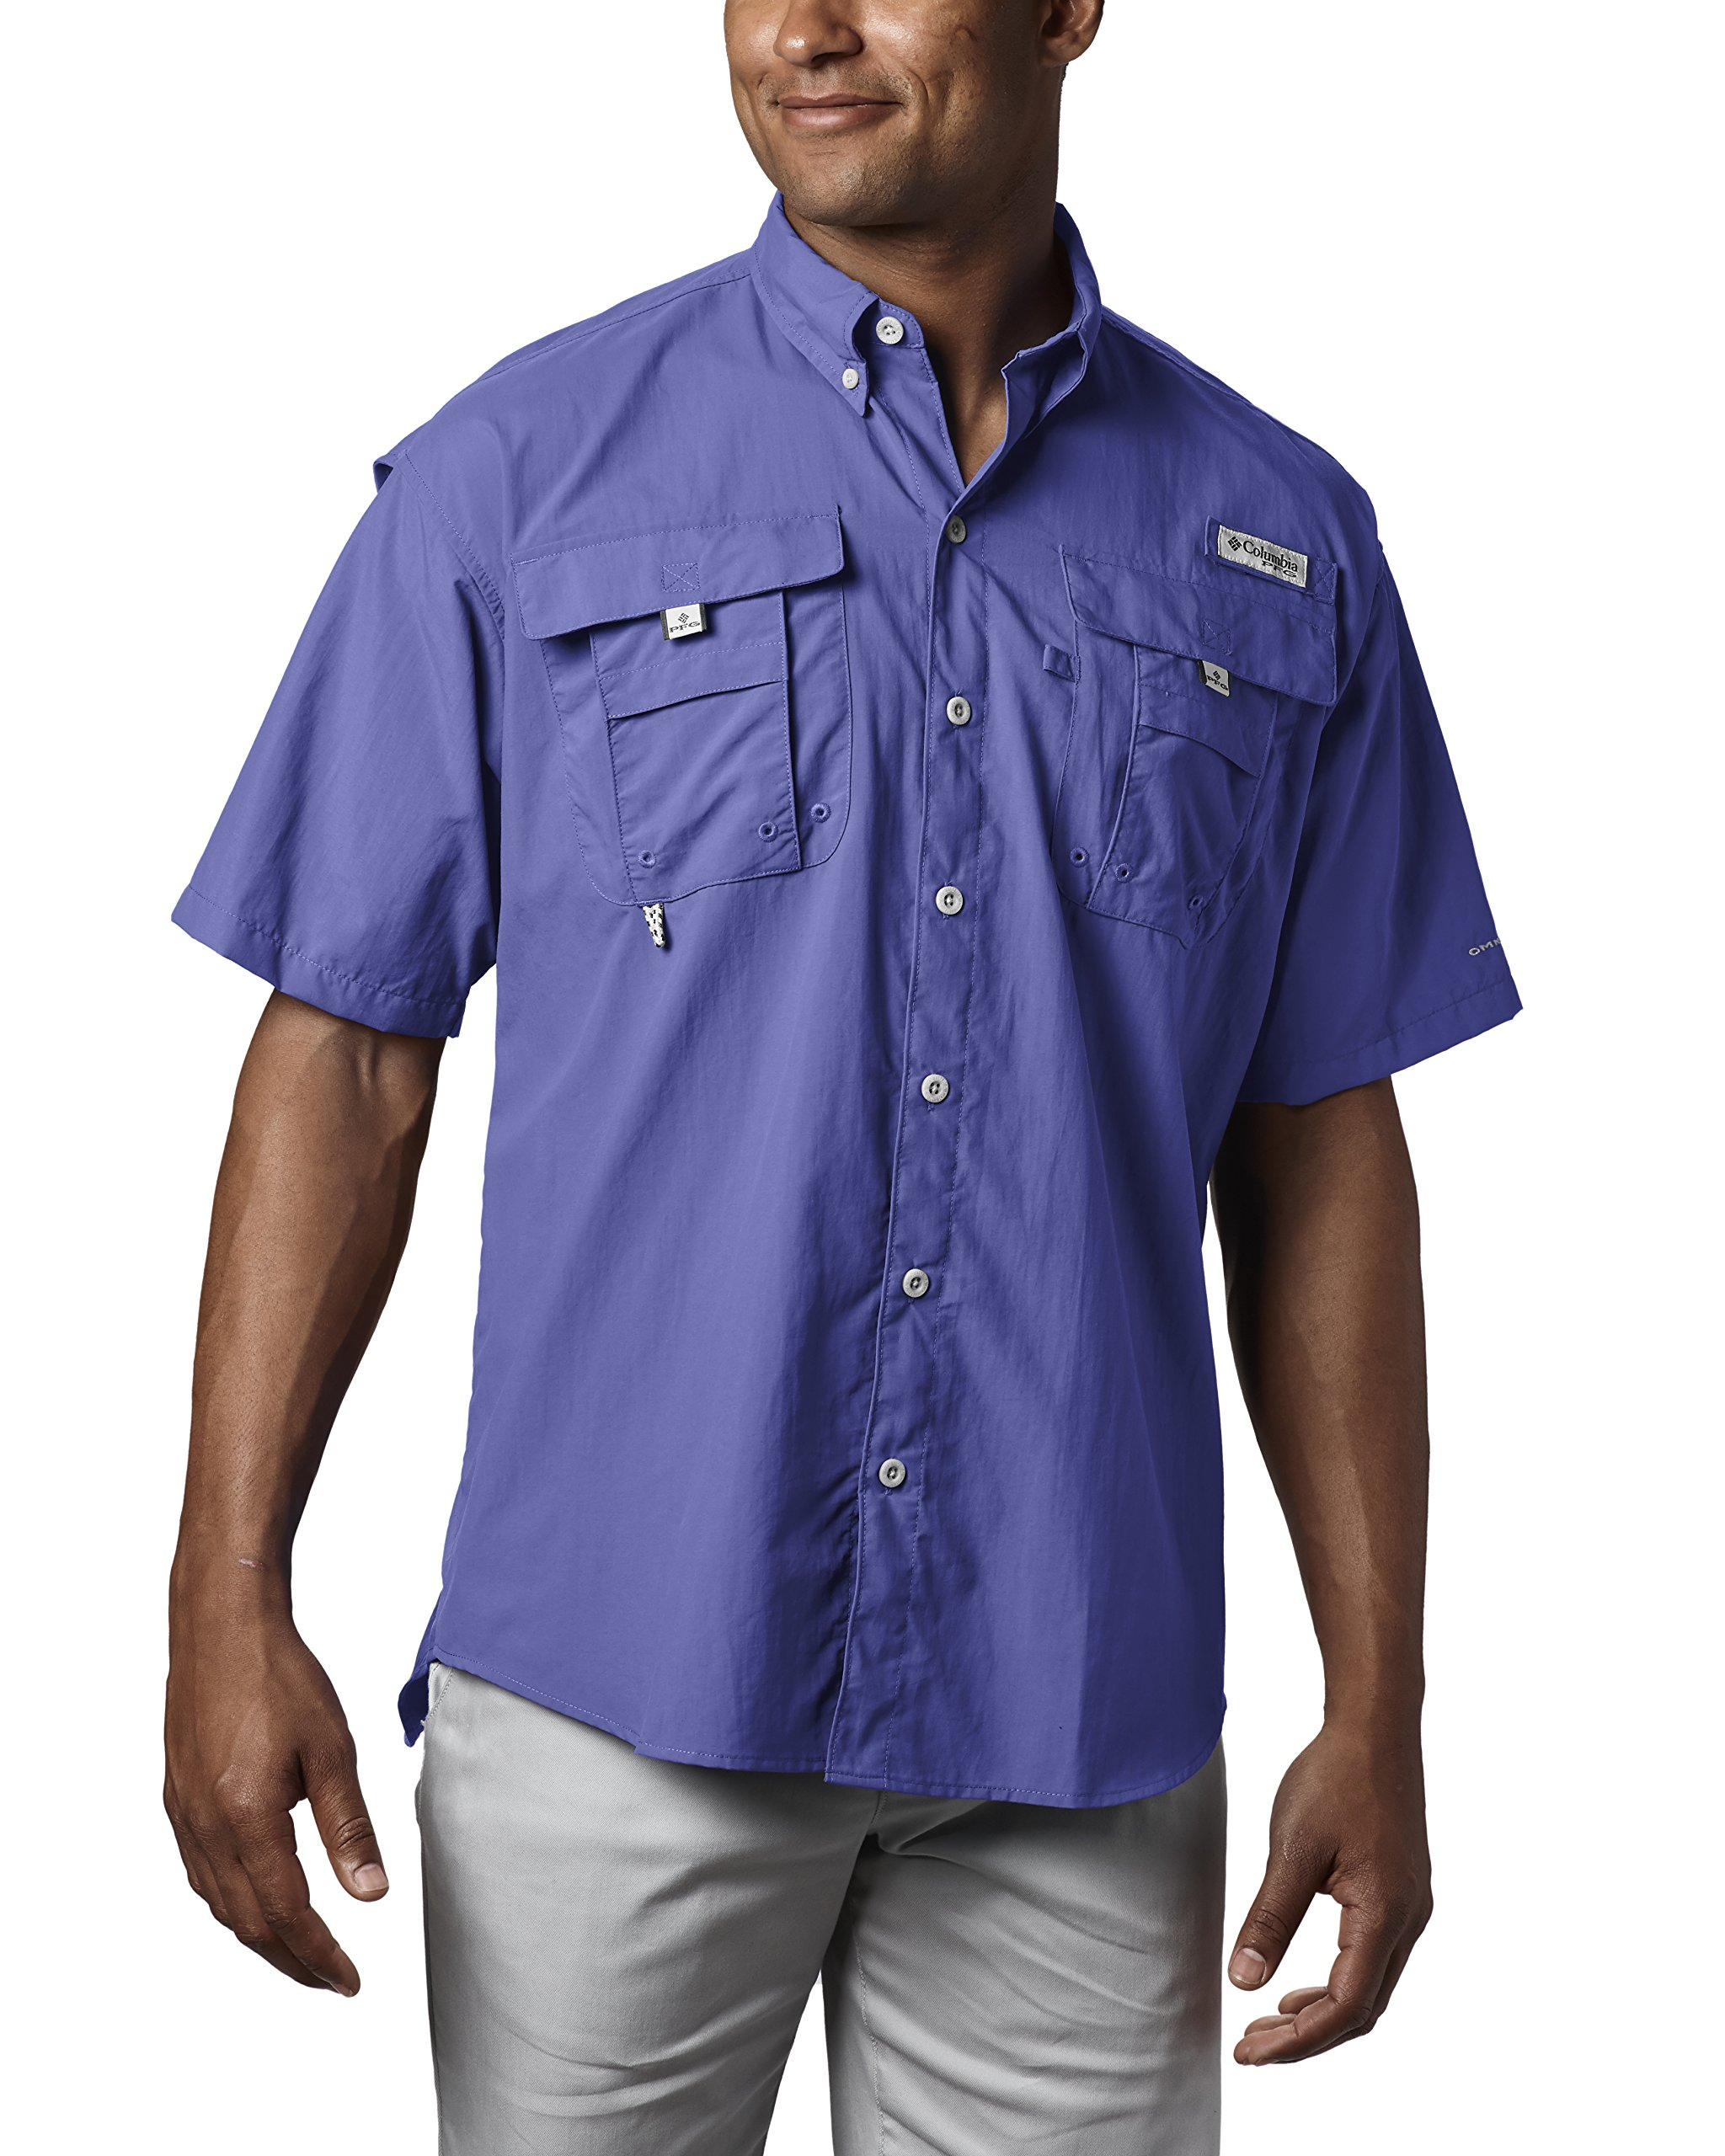 Columbia Men's PFG Bahama II Short Sleeve Shirt, Purple Lotus, Large by Columbia